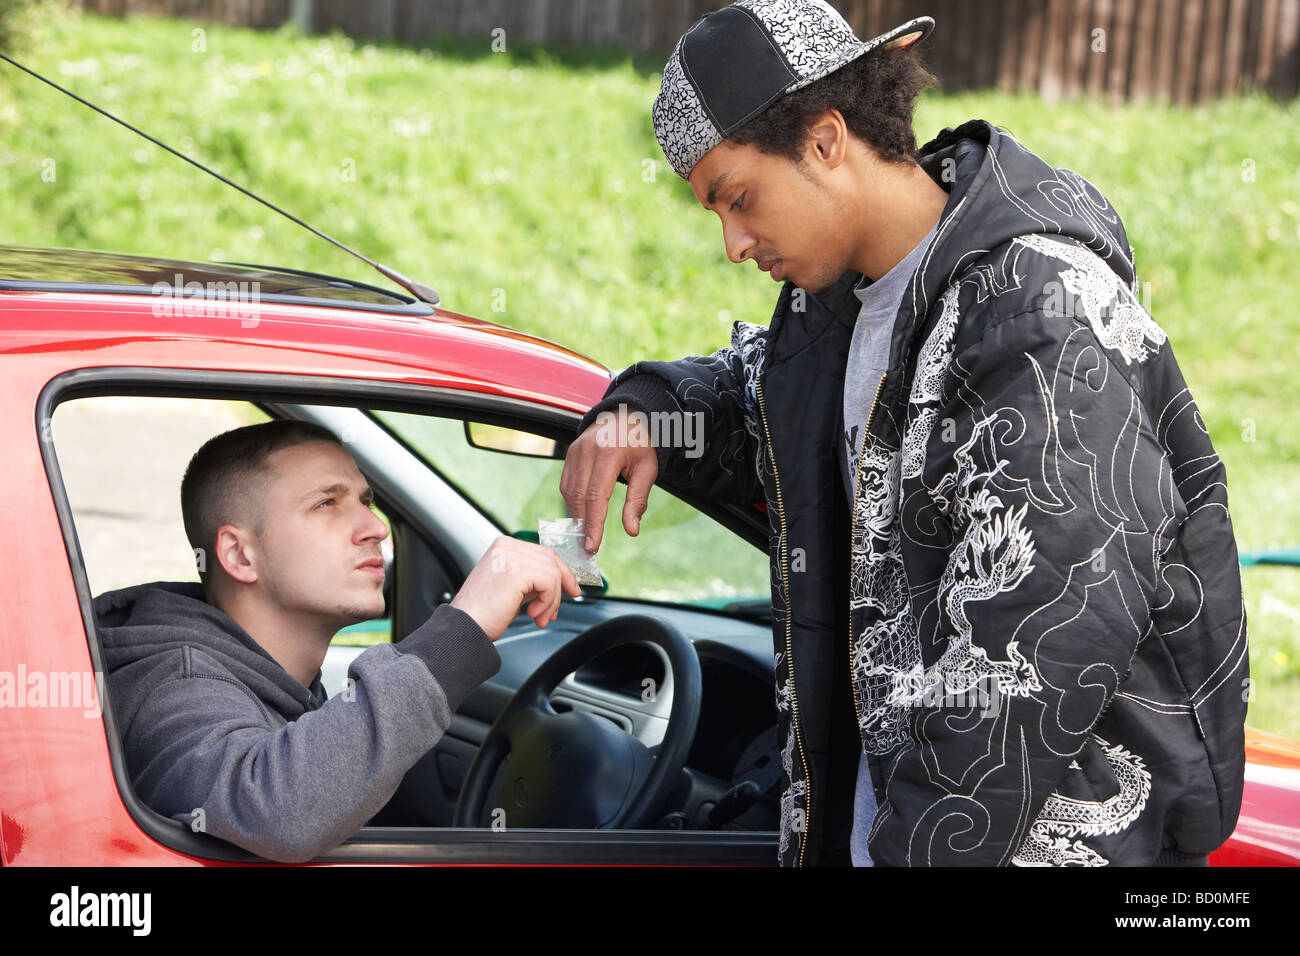 Young Man Dealing Drugs From Car - Stock Image